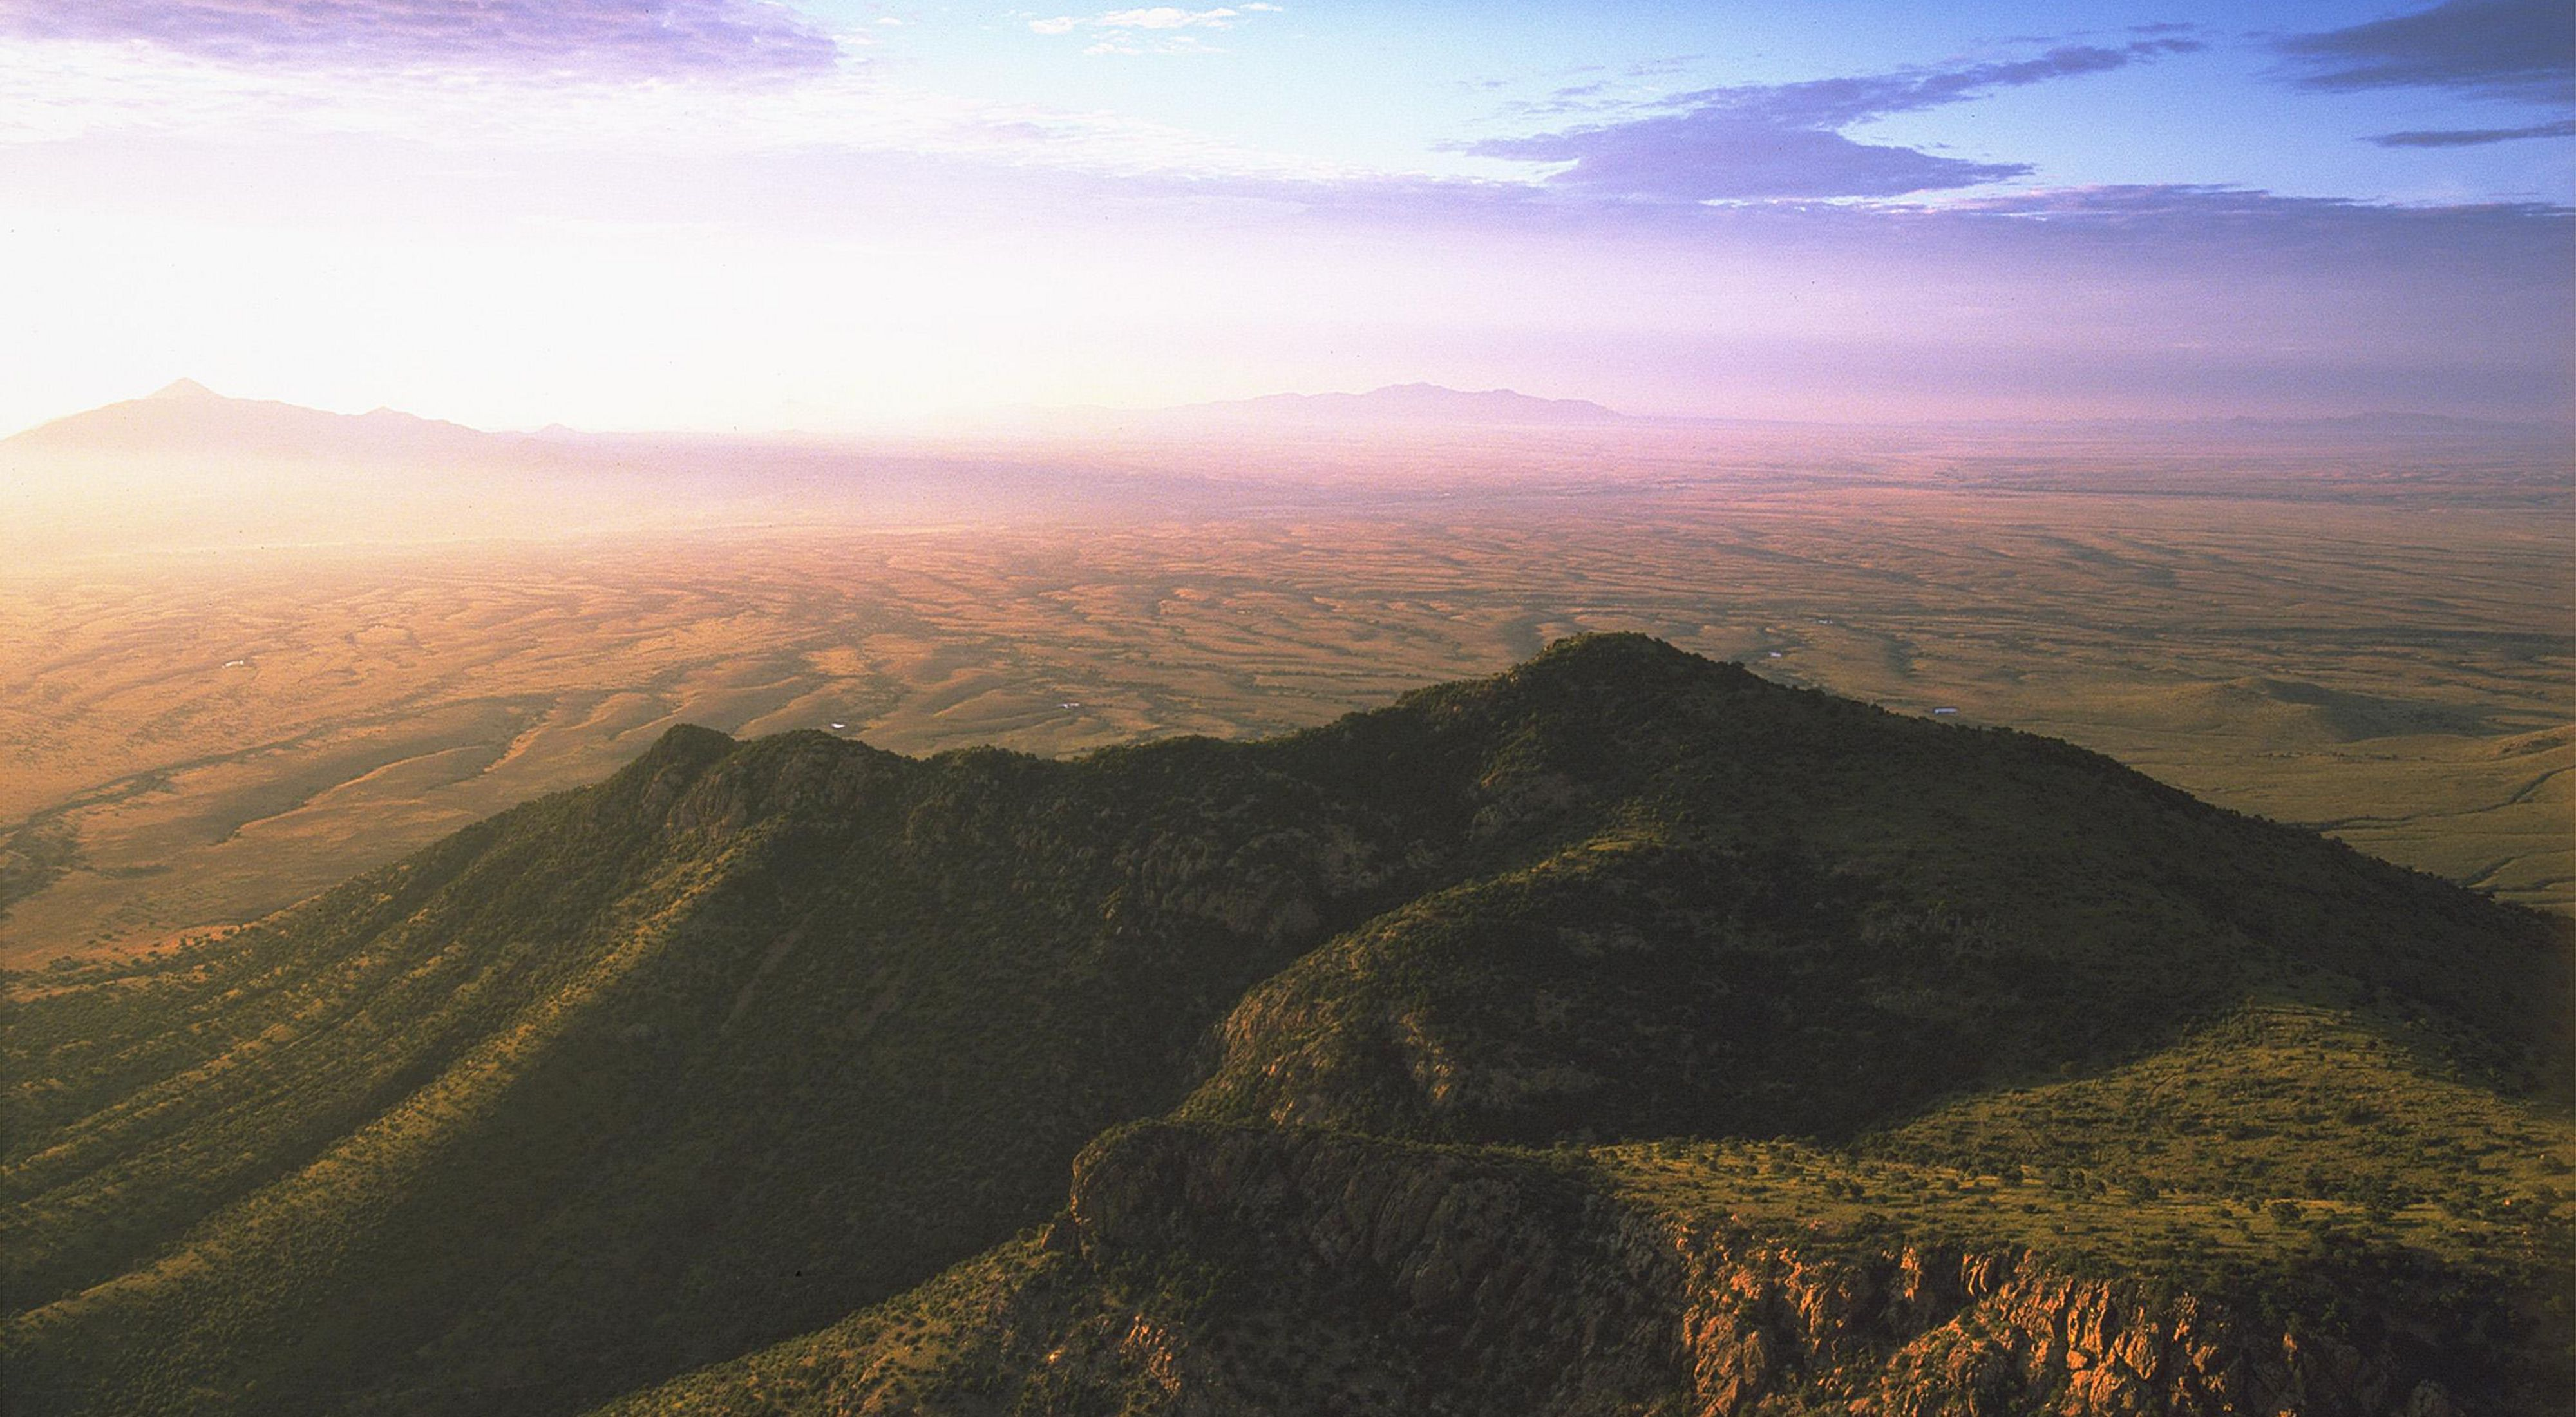 Aerial view of the southern Huachuca Mountains in Arizona.